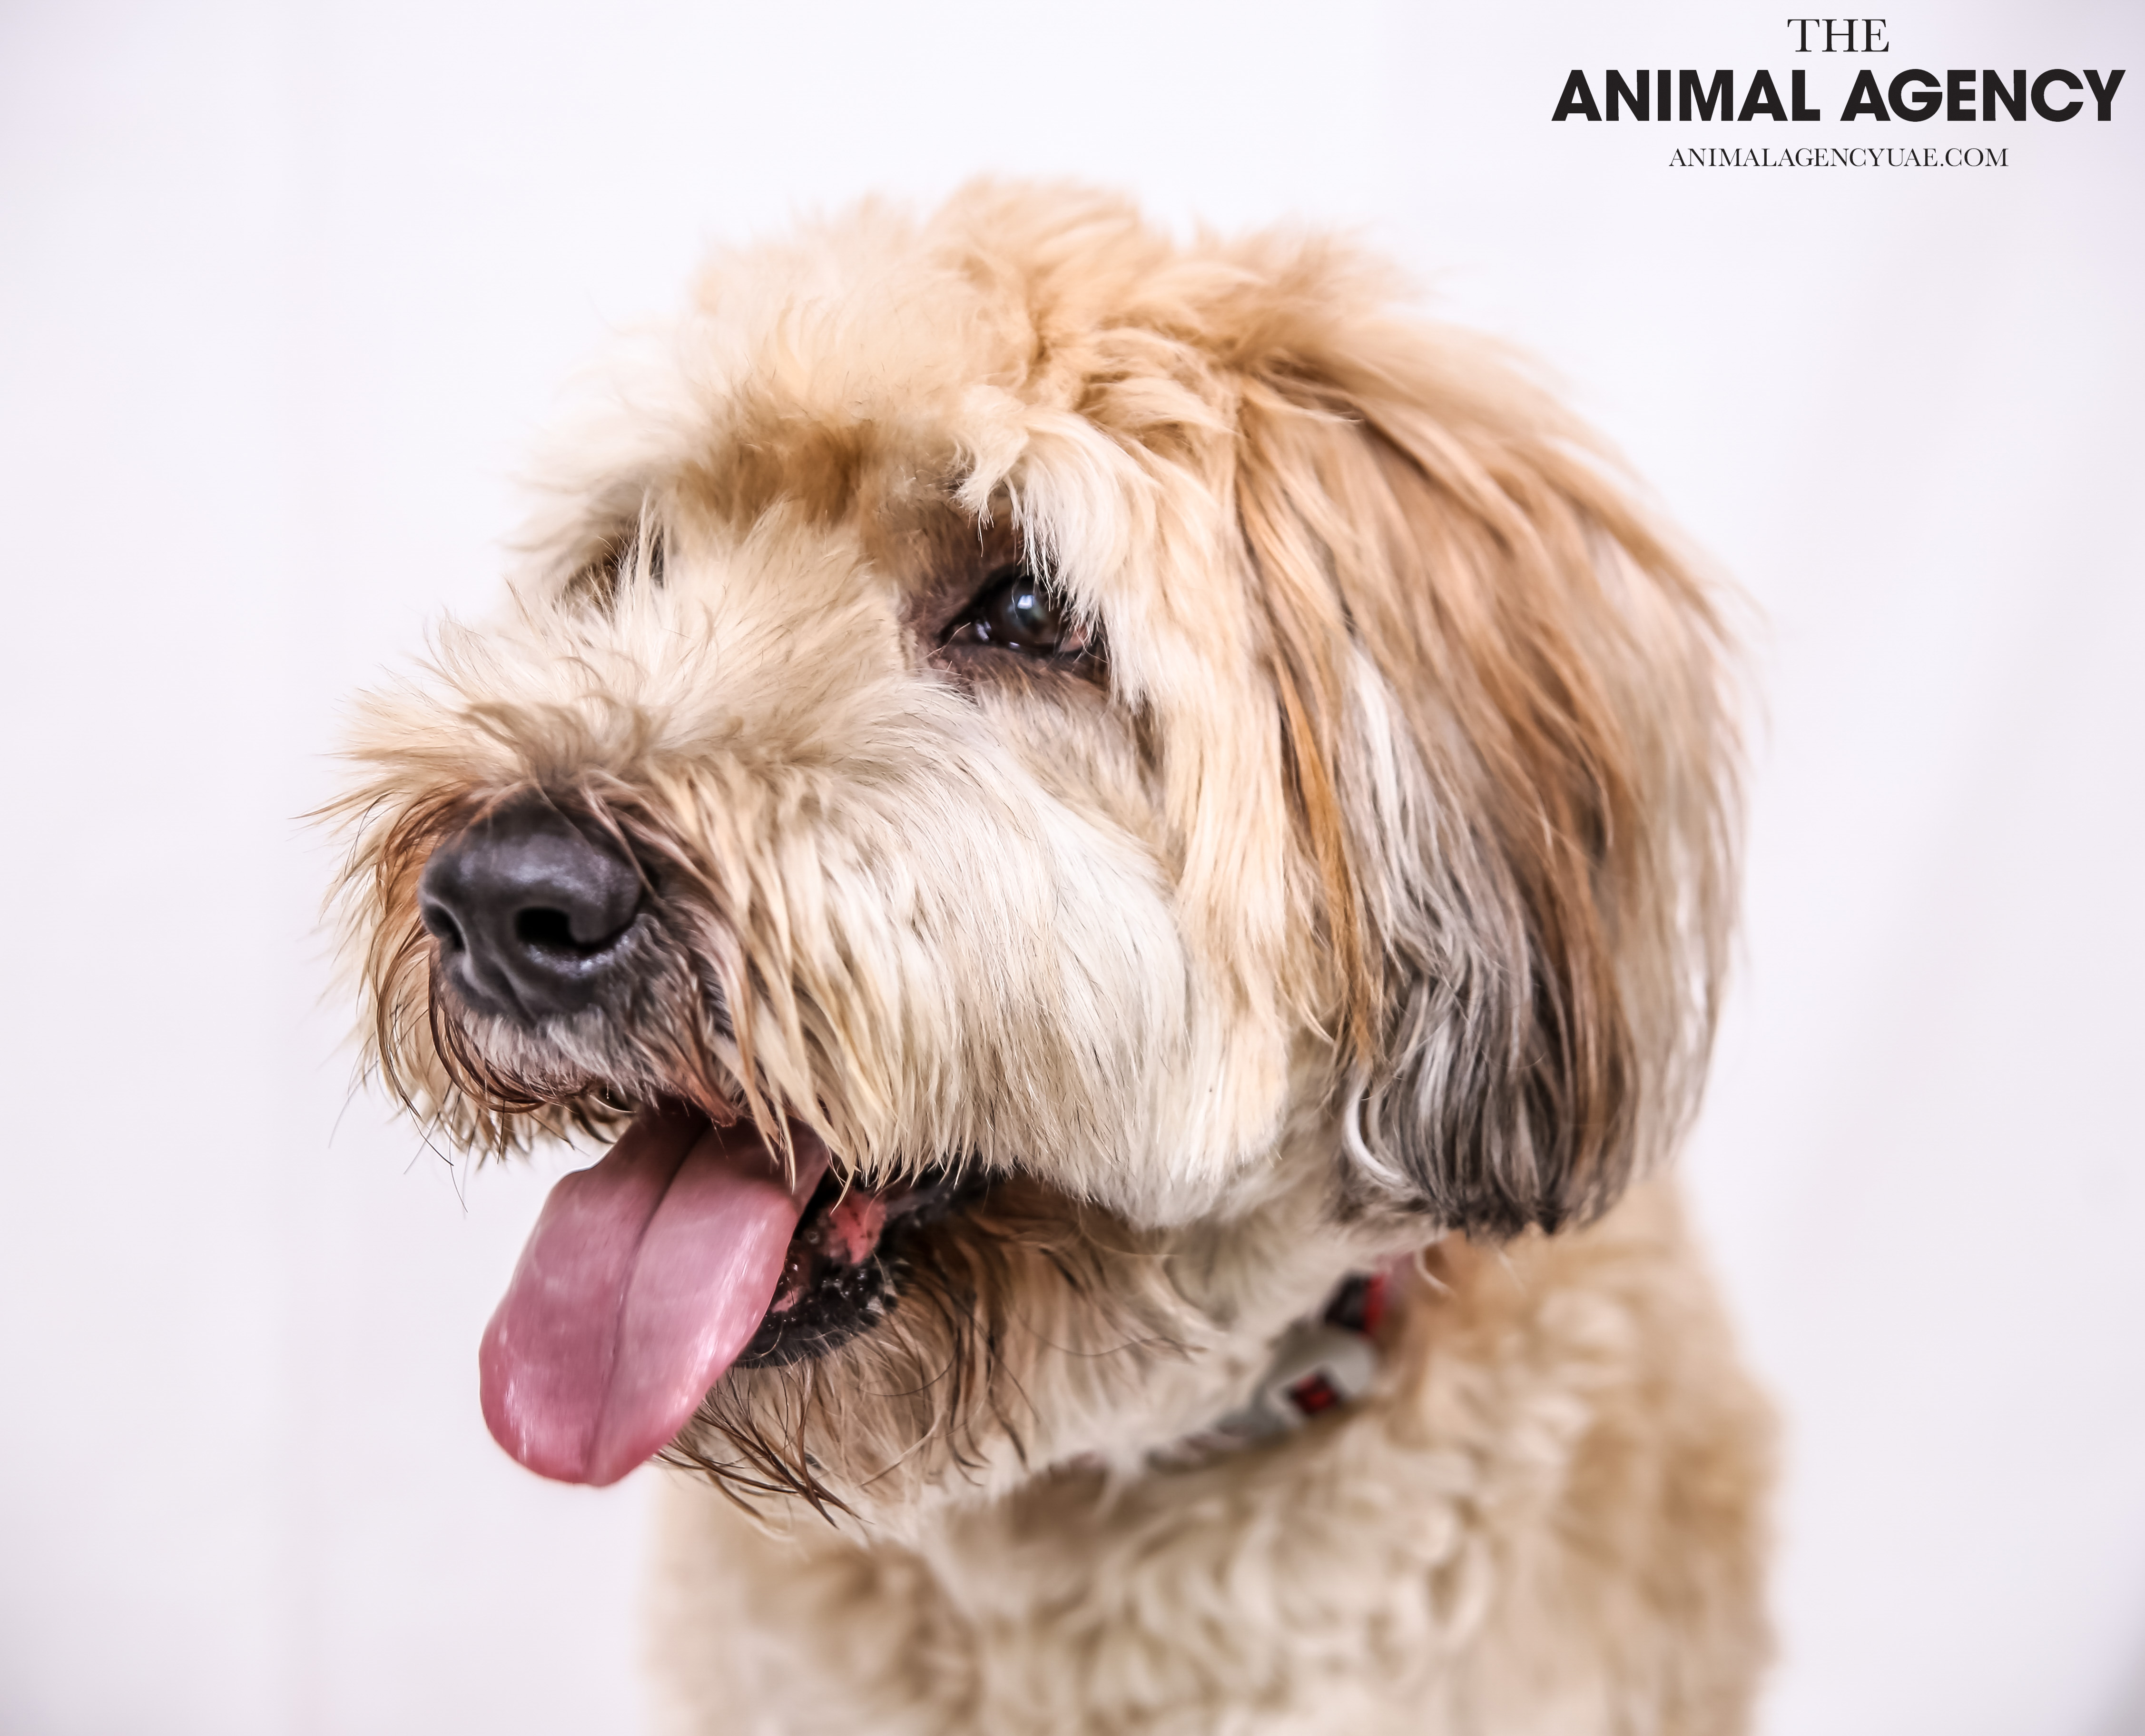 The Animal Agency UAE_Dog_Remy (2).jpg